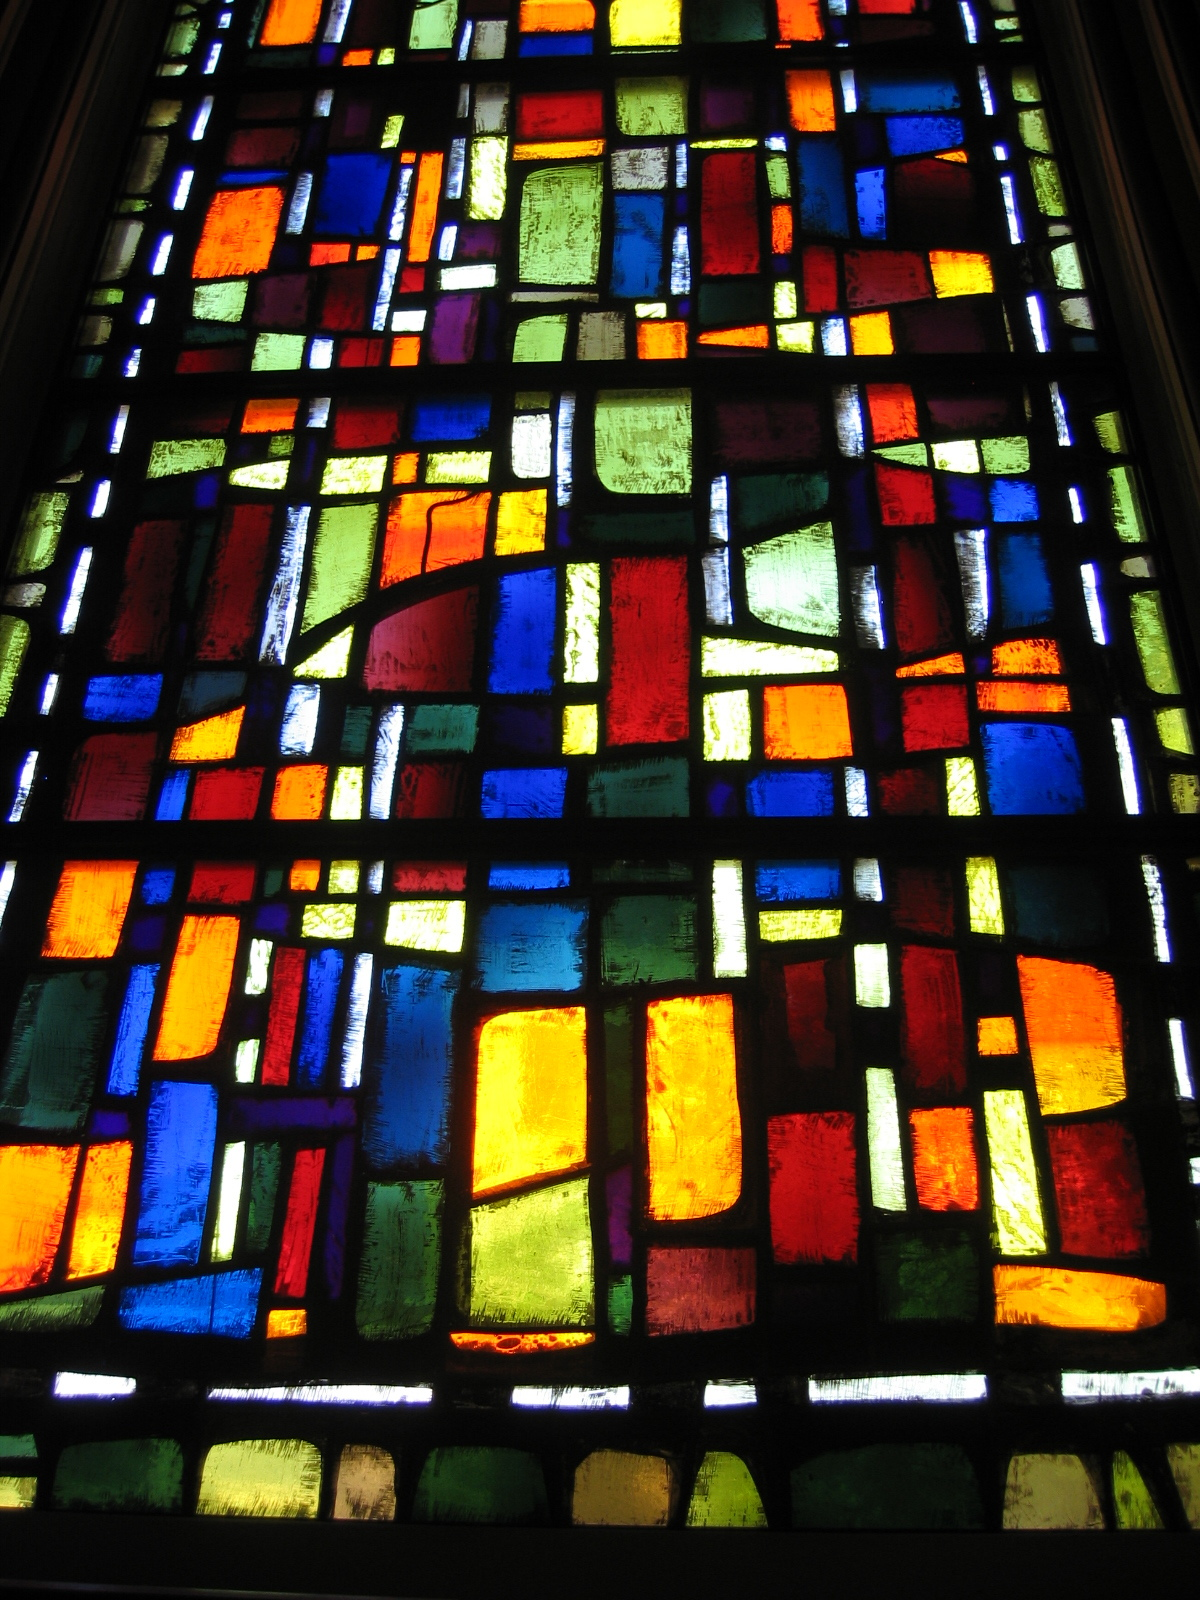 stained-glass-5-1540112.jpg